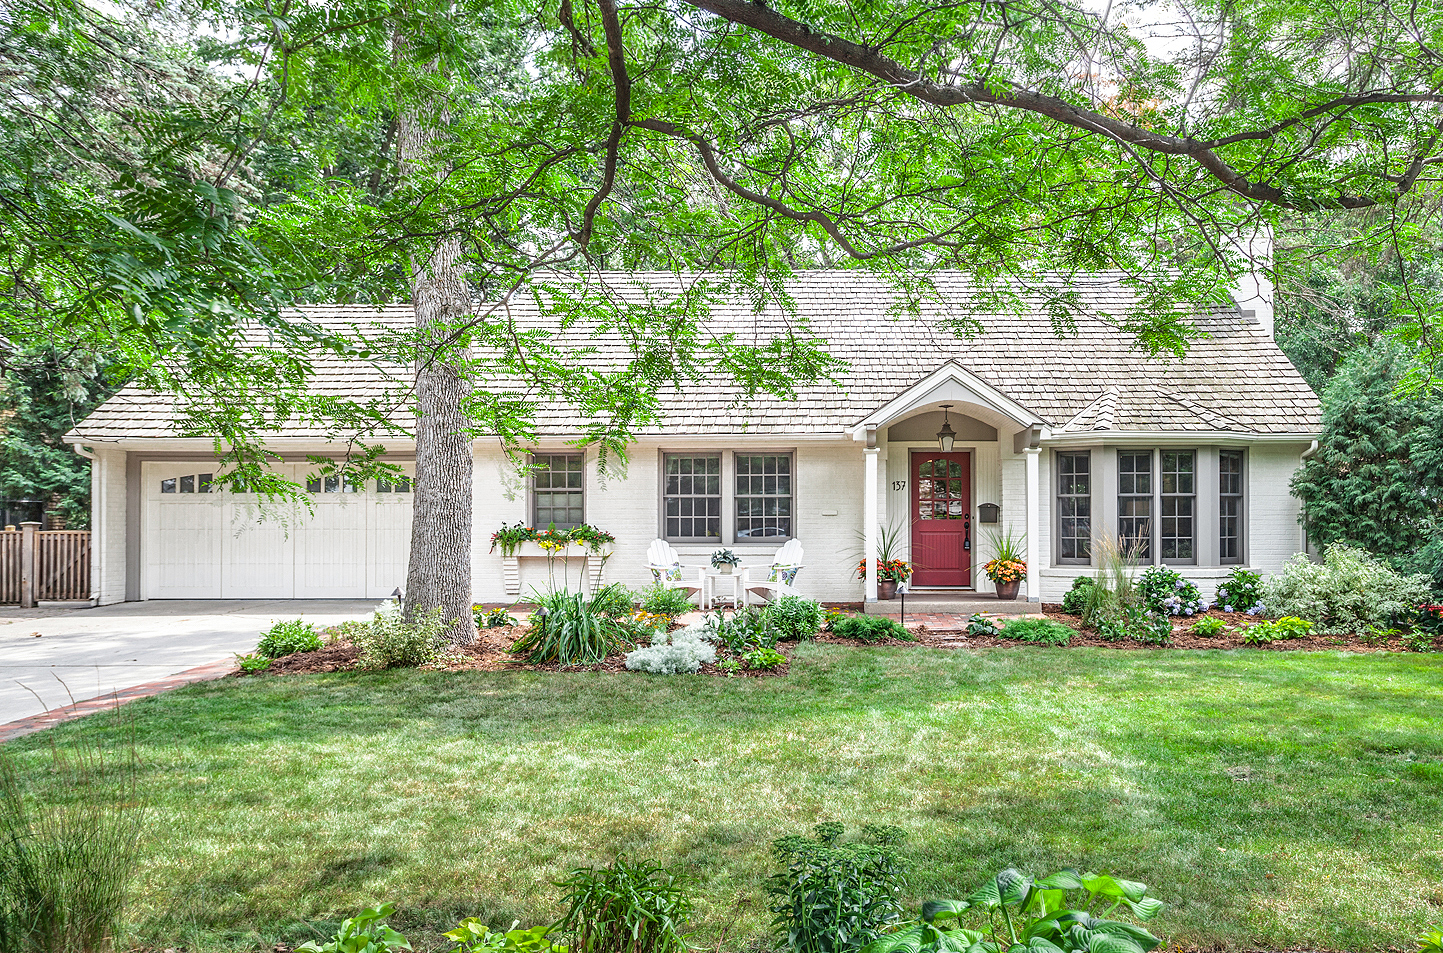 5611 sheldon road - 137 Holly Road Hopkins Sold 587 000 4 Bed 3 Bath 2 956 Square Feet Represented Seller